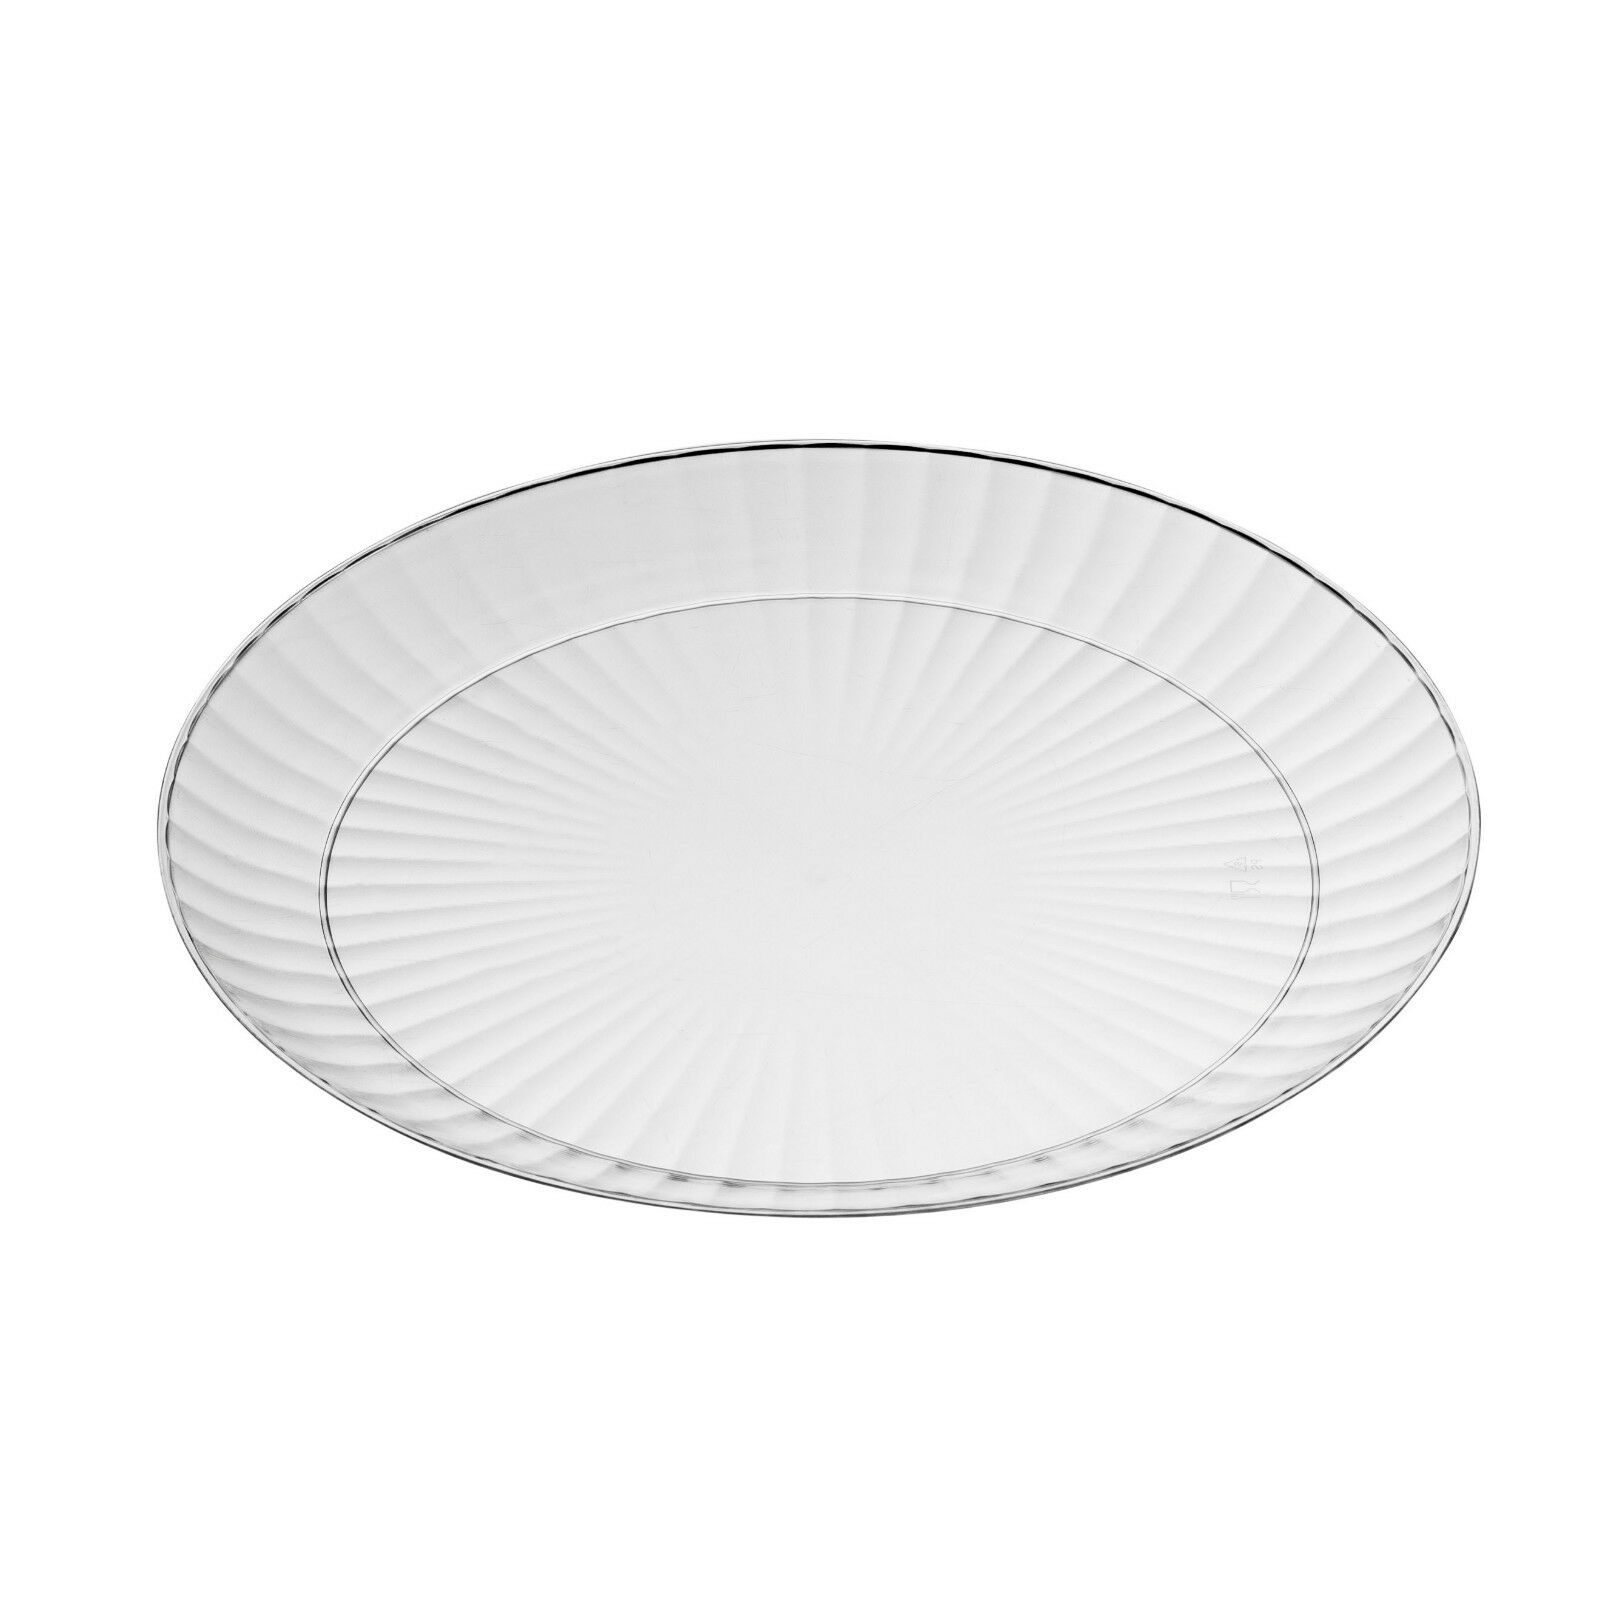 240 x  9  23cm  Dinner Plates Clear Sturdy Disposable Plastic - Party & Wedding